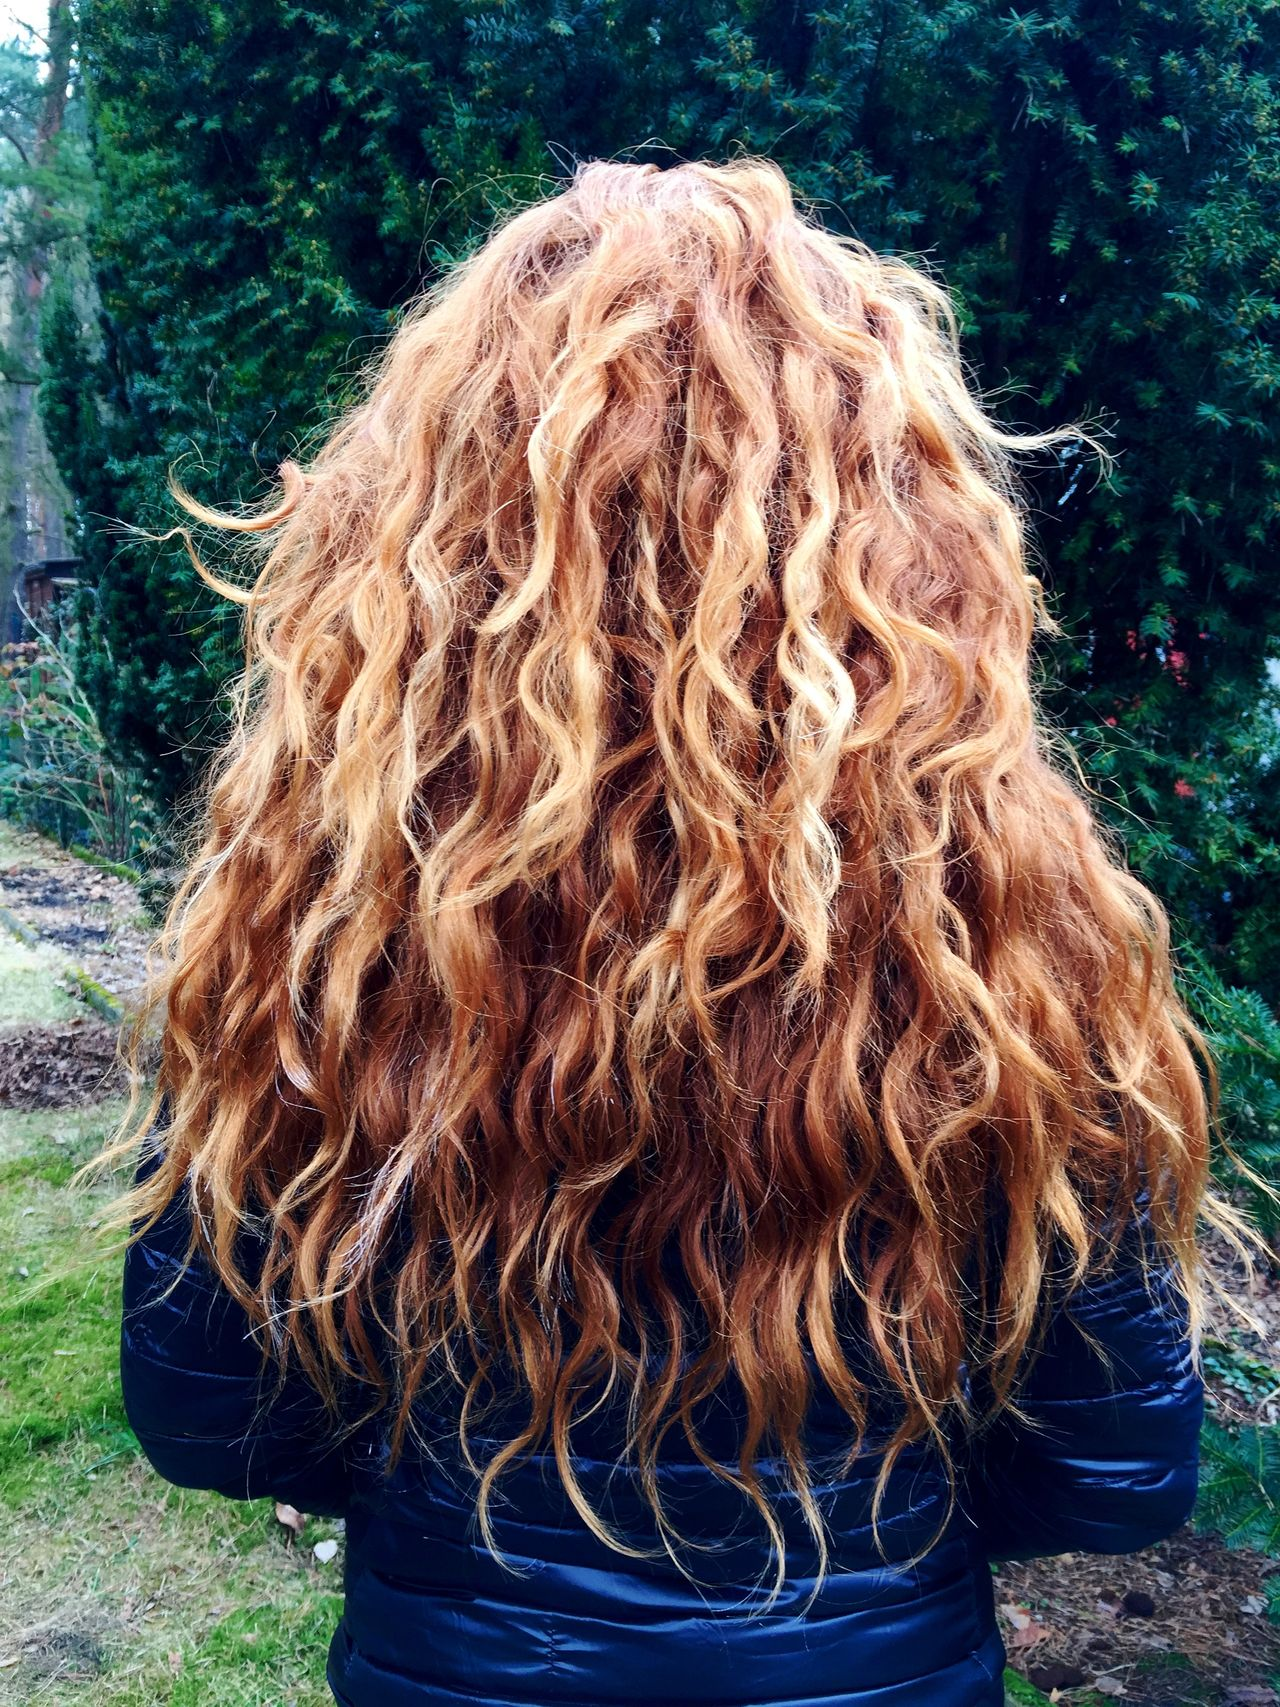 Aveda Close-up Curls Curly Hair Day Ginger Grass Hair Model Long Hair Magical Nature One Person Outdoors Product Real People Rear View Red Red Head Tree Women Young Adult Young Women